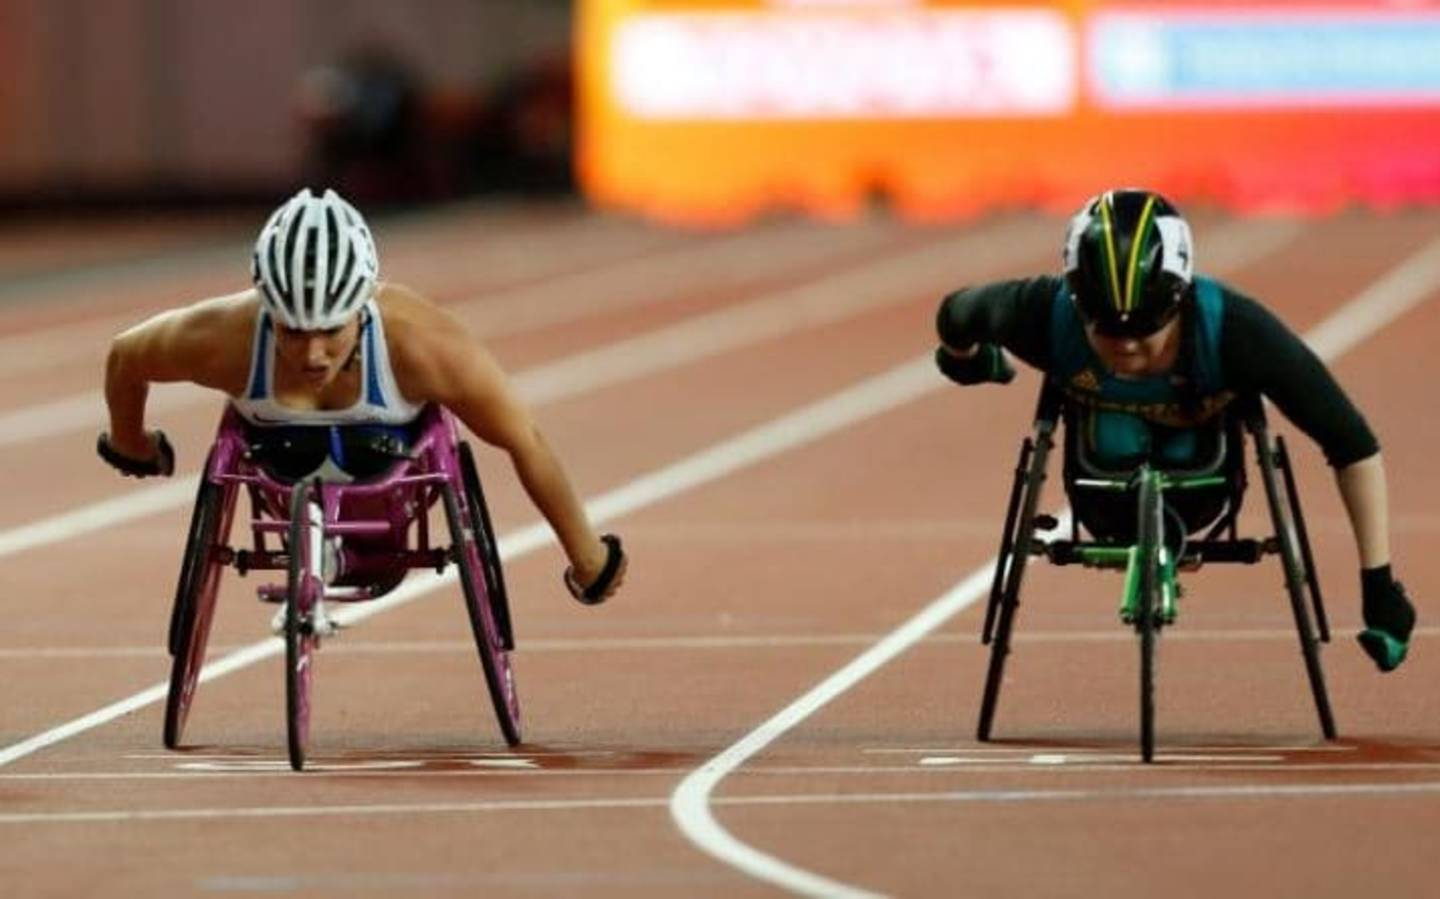 Wheelchair racer Sammi Kinghorn pushing in 400m final race on track